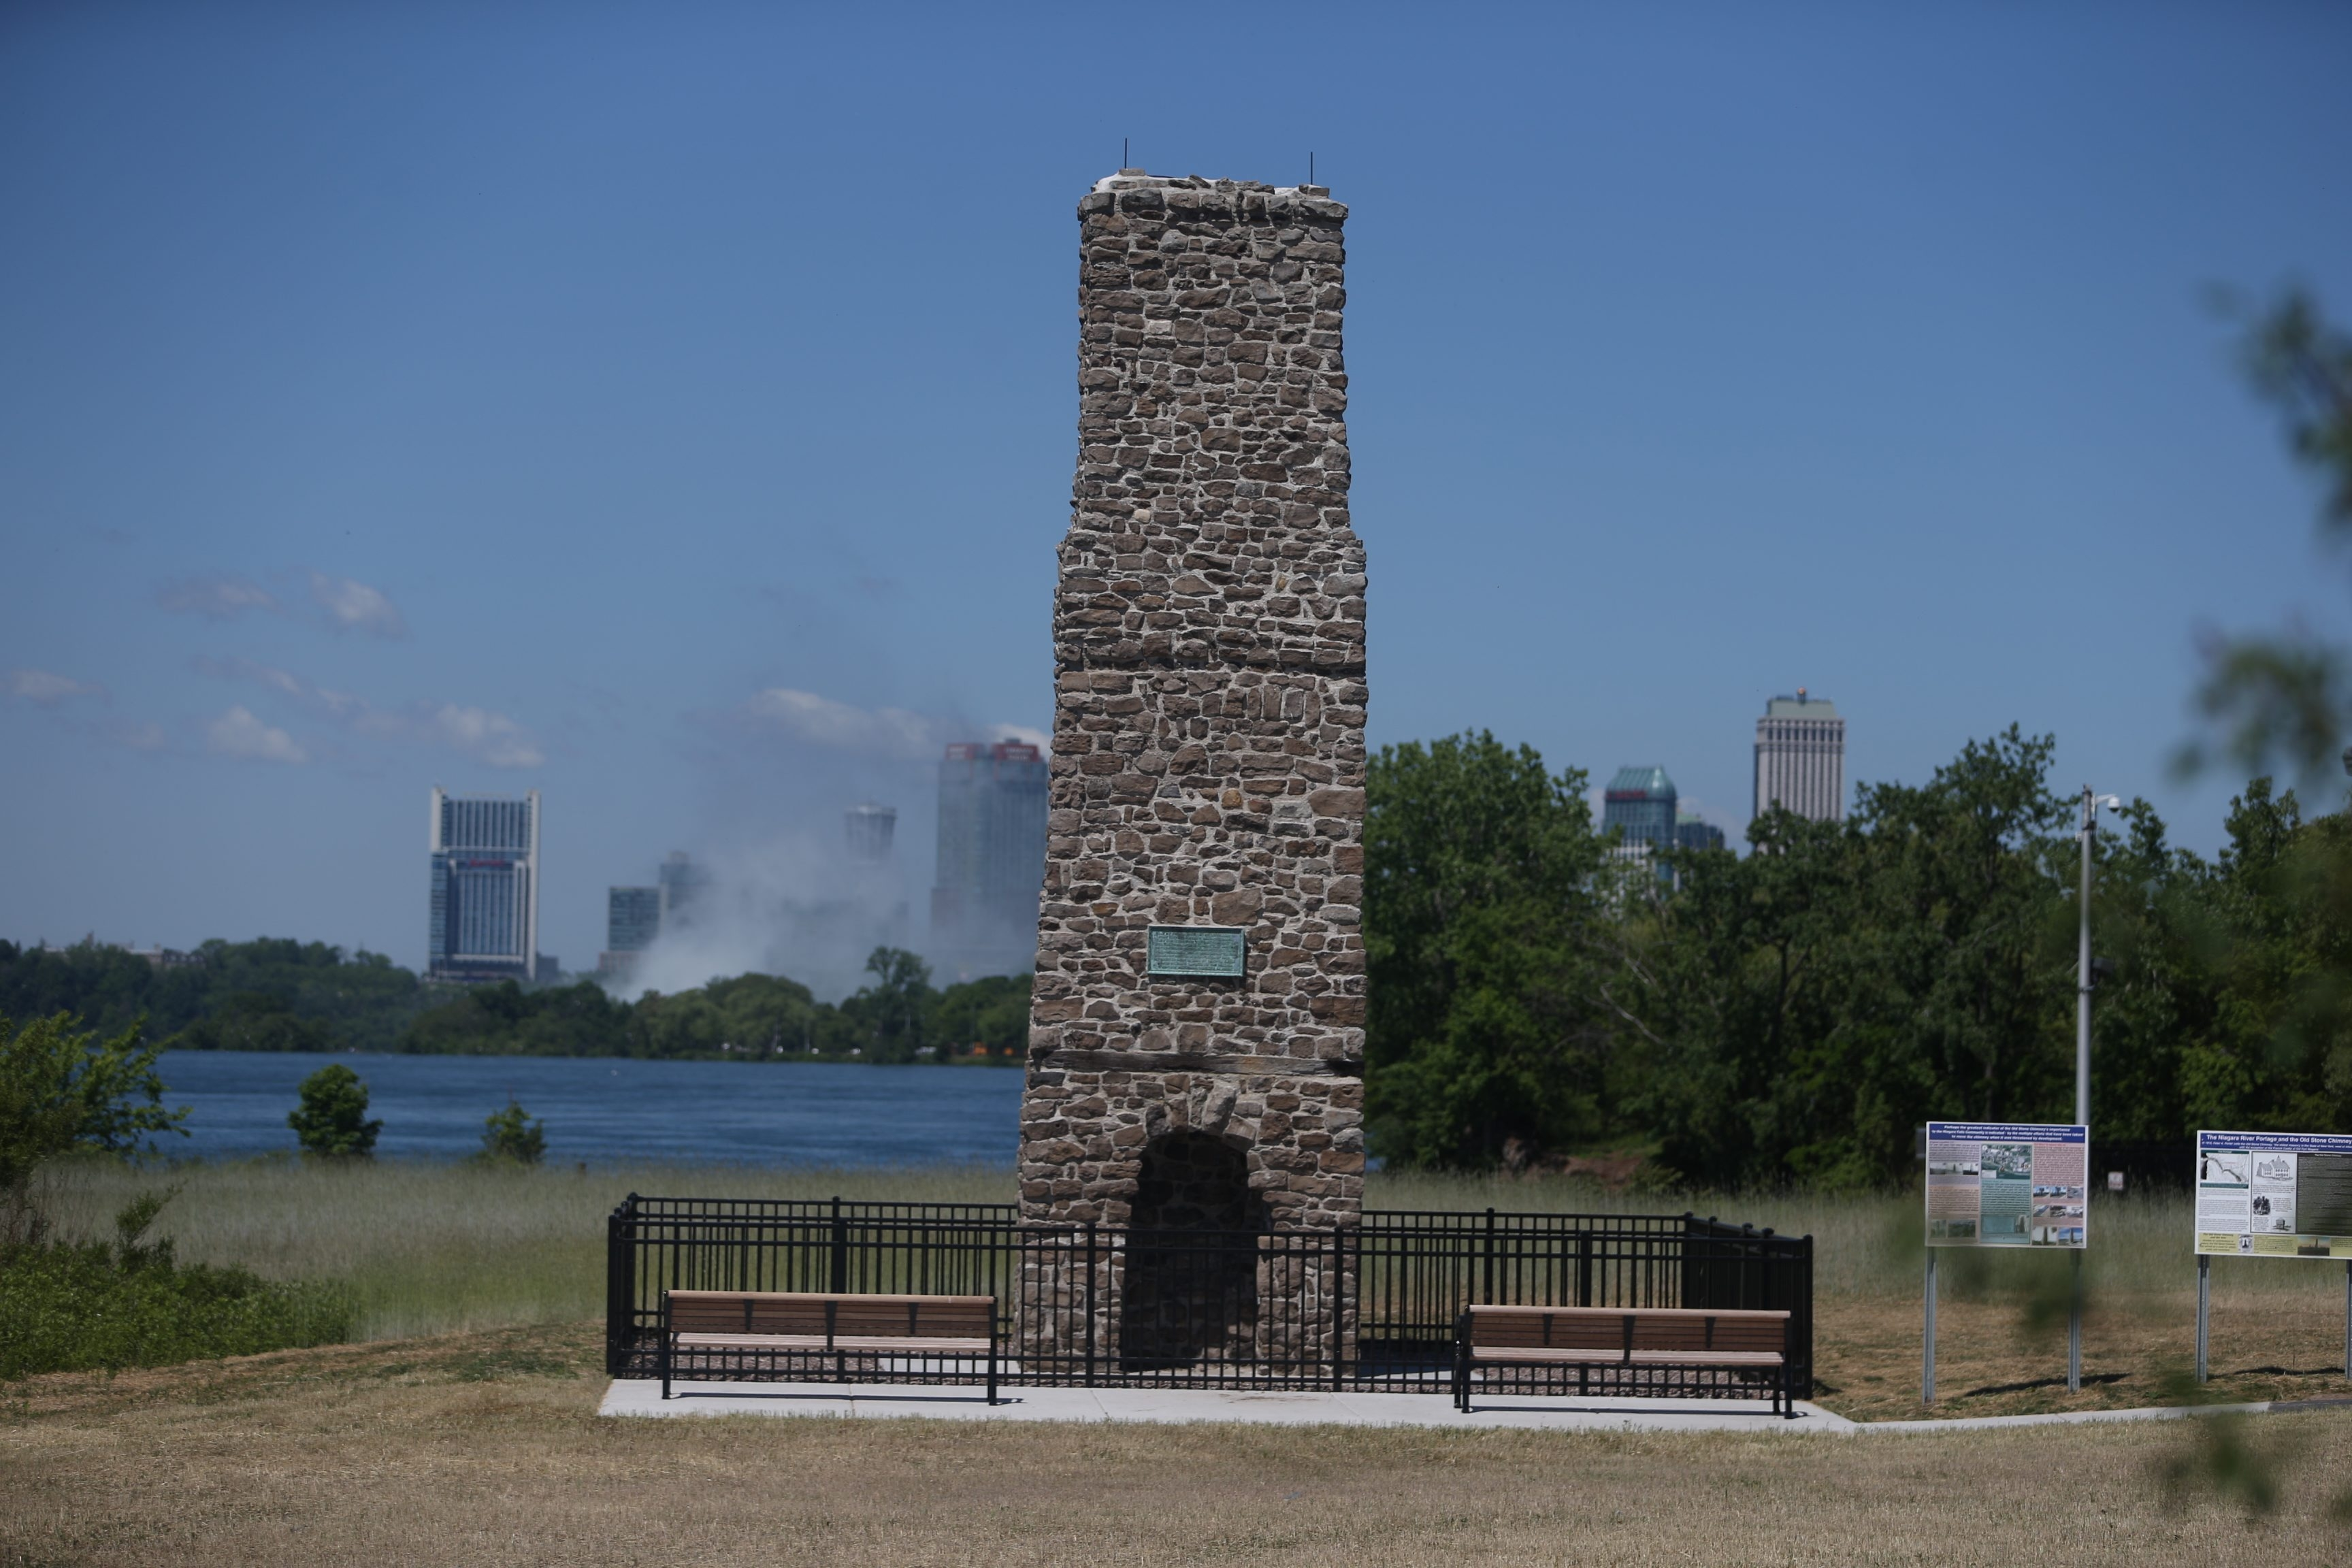 The Old Stone Chimney, built in 1750 by the French in Niagara Falls, N.Y., was moved in 2015 to a new site between the Niagara Scenic Parkway and the Niagara River. It was rededicated on June 10, 2016.  (John Hickey/Buffalo News)